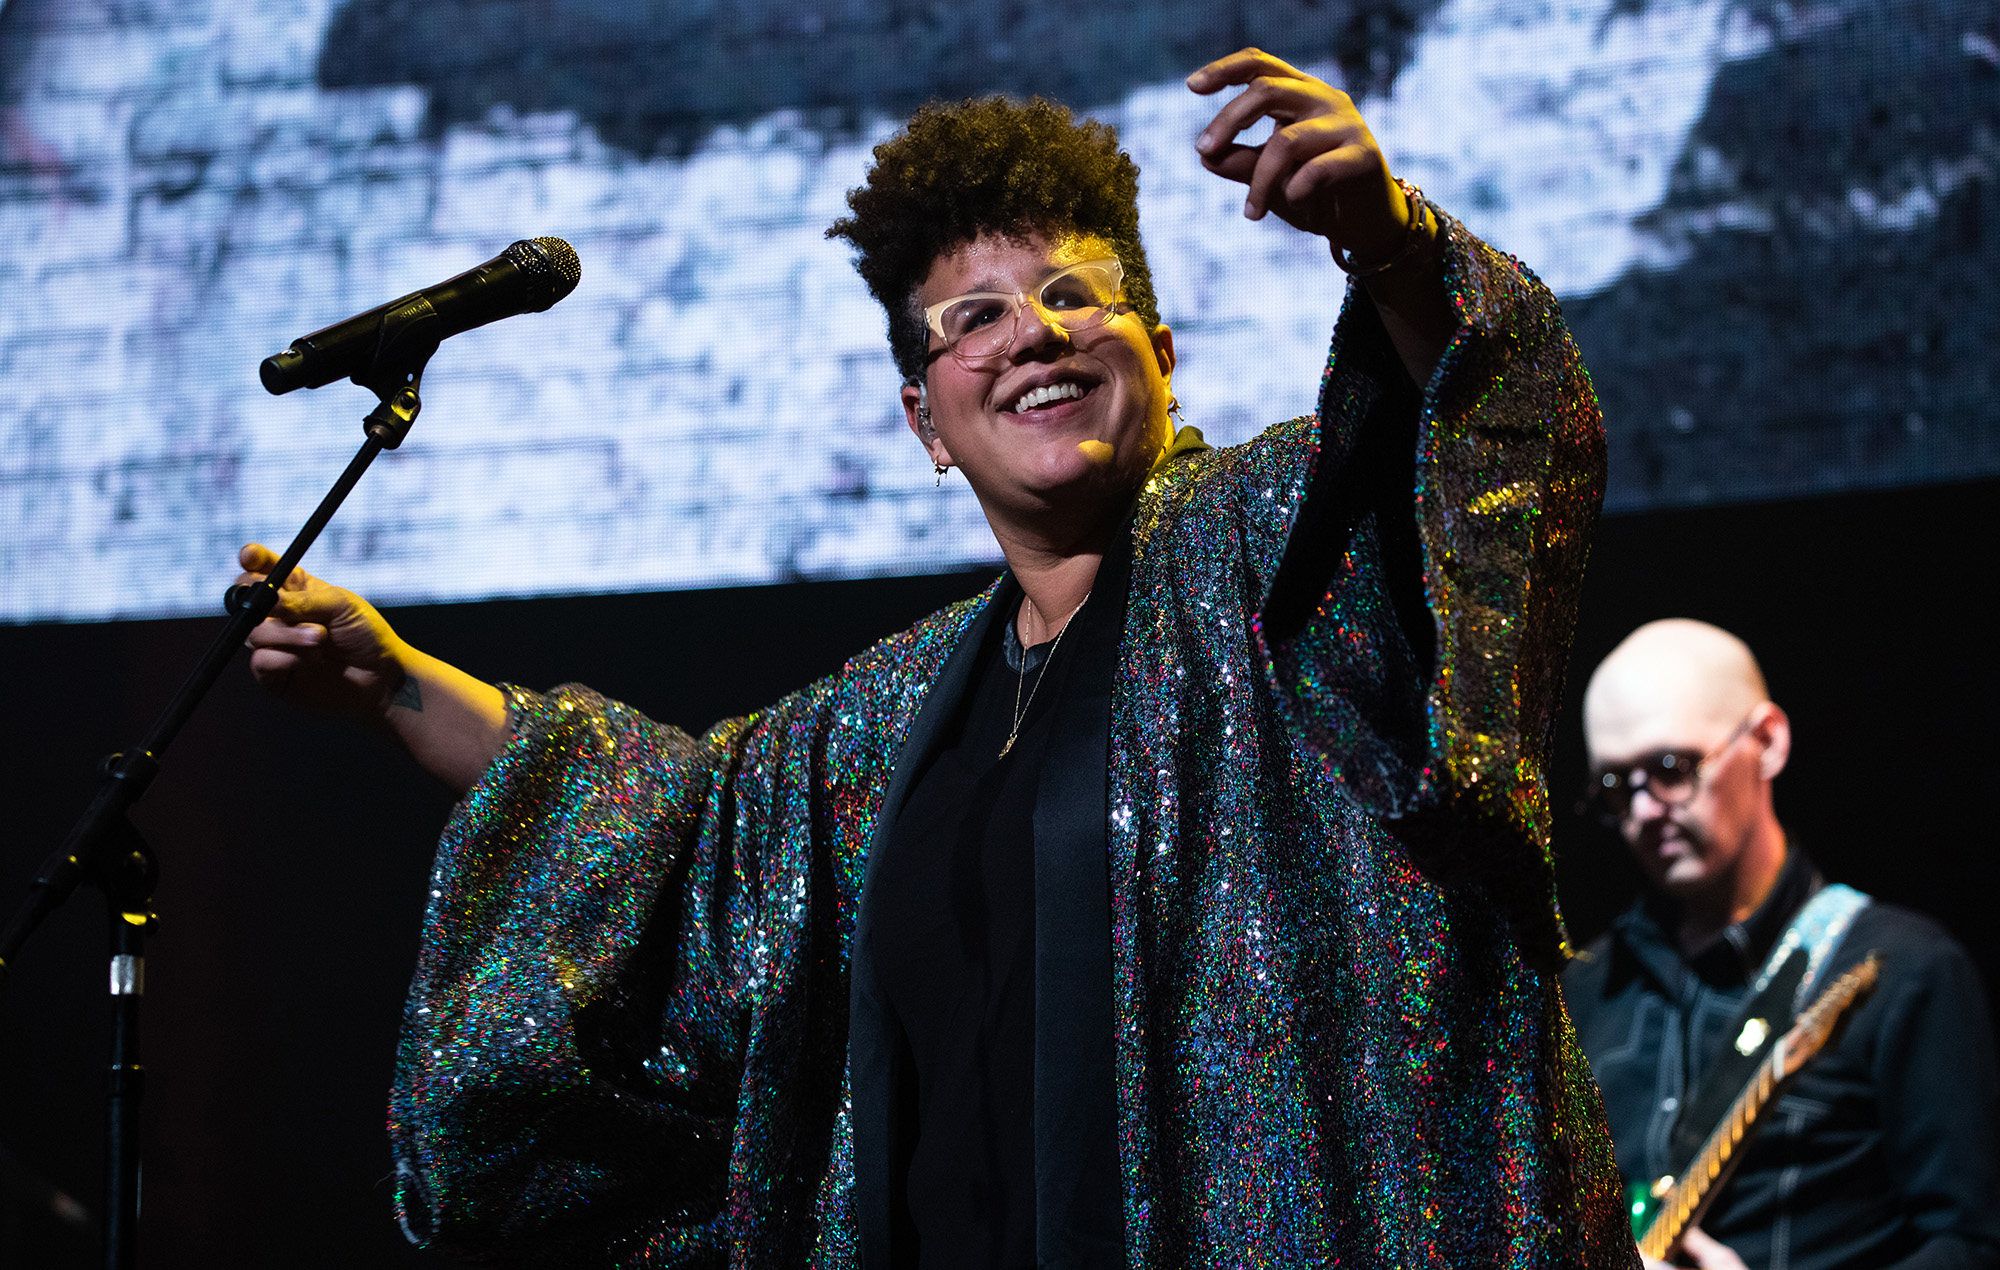 Brittany Howard shares cover of '(Your Love Keeps Lifting Me) Higher & Higher'